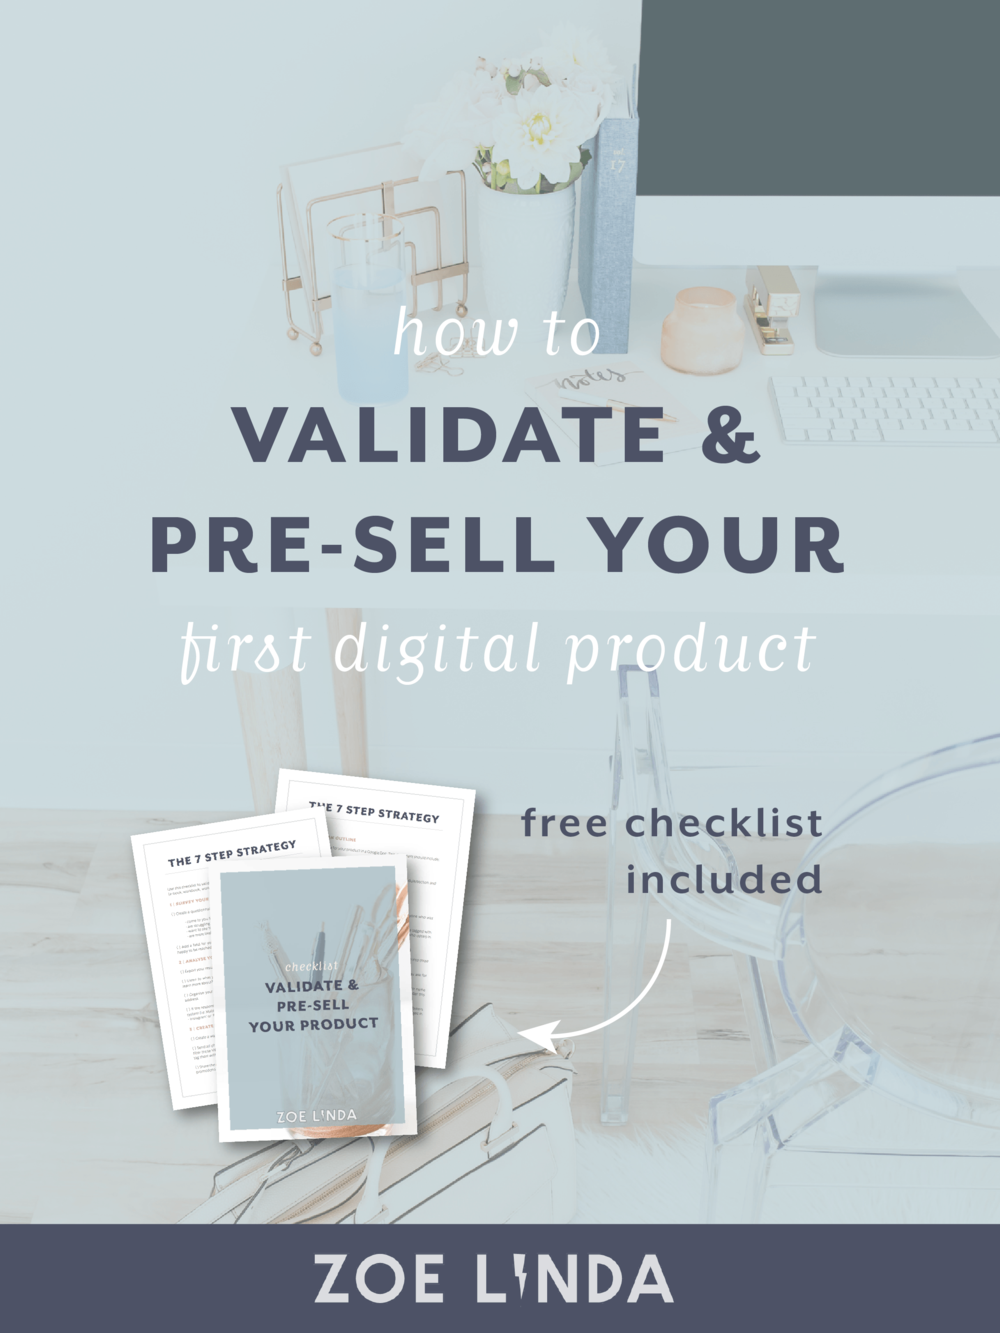 How To Validate And Pre-Sell Your First Digital Product | Do online course launches make you want to tear your hair out? Digital product and infoproduct creators and creative entrepreneurs can use this simple strategy to validate, pre-sell their products and sell more online. Click through to learn more and download my free checklist!